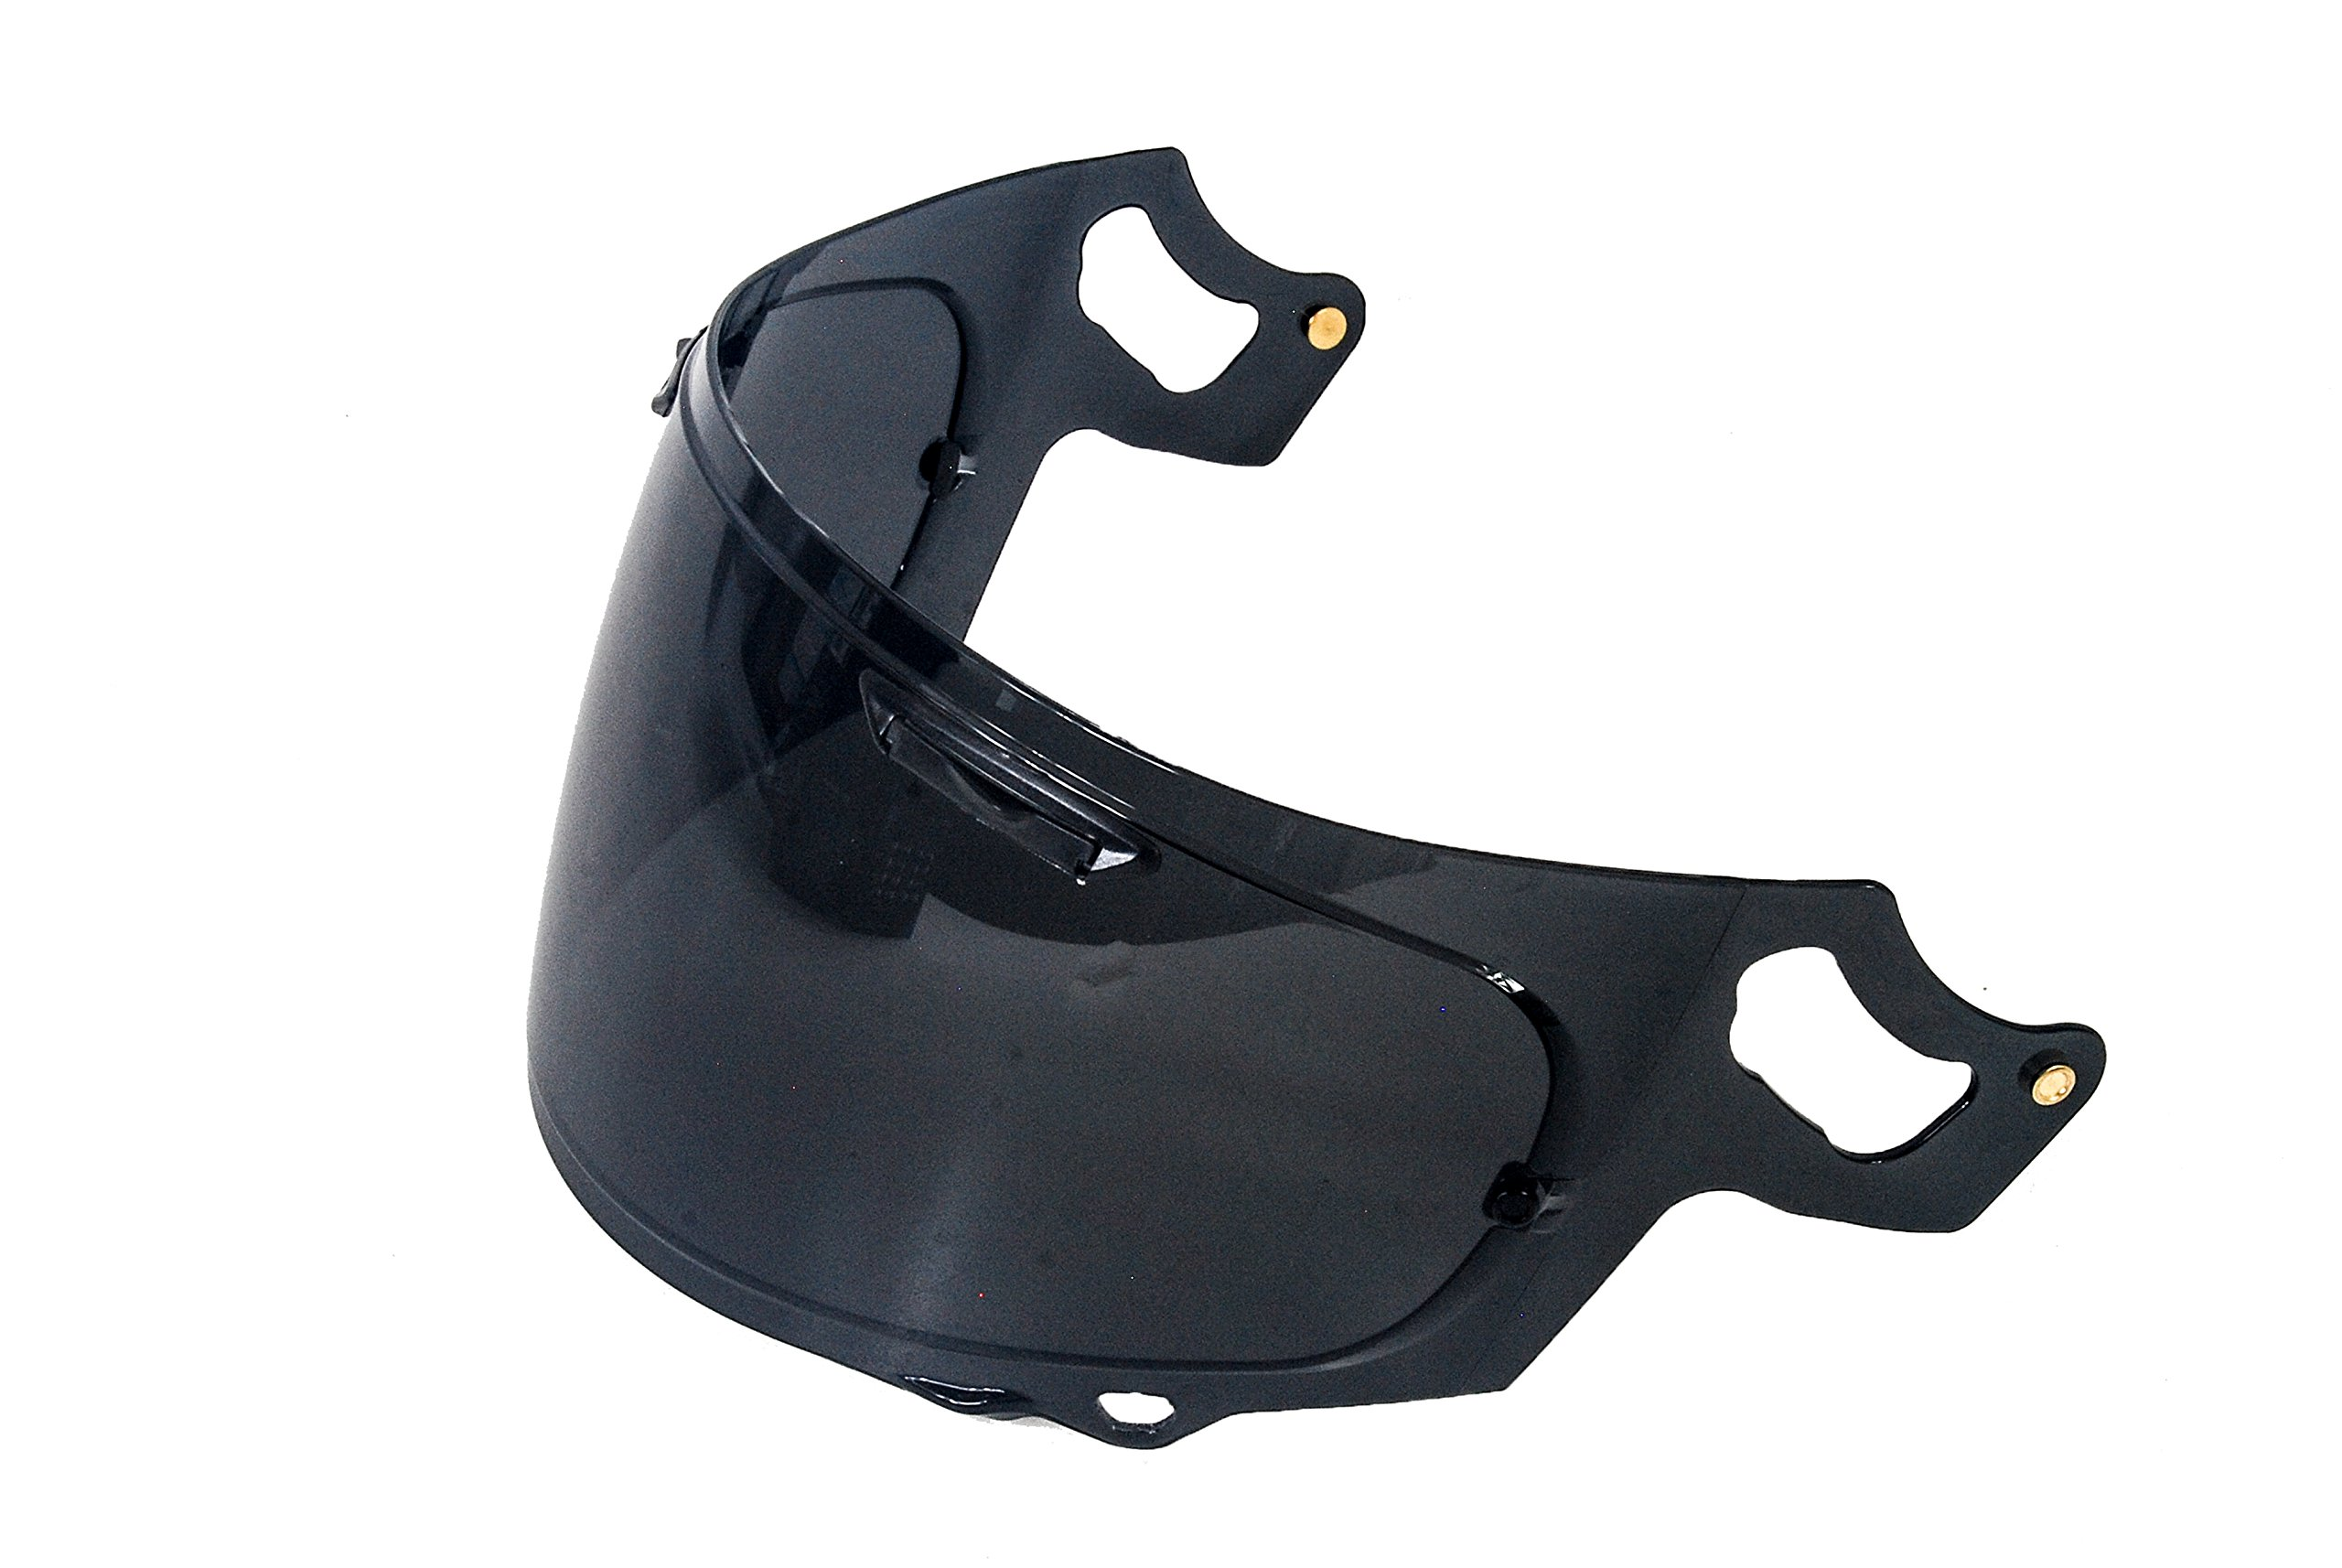 Smoke RX-7x Polycarbonate aftermarket helmet visor to fit Arai Shield Visor RX-7x, RX-7V, Corsair X only.